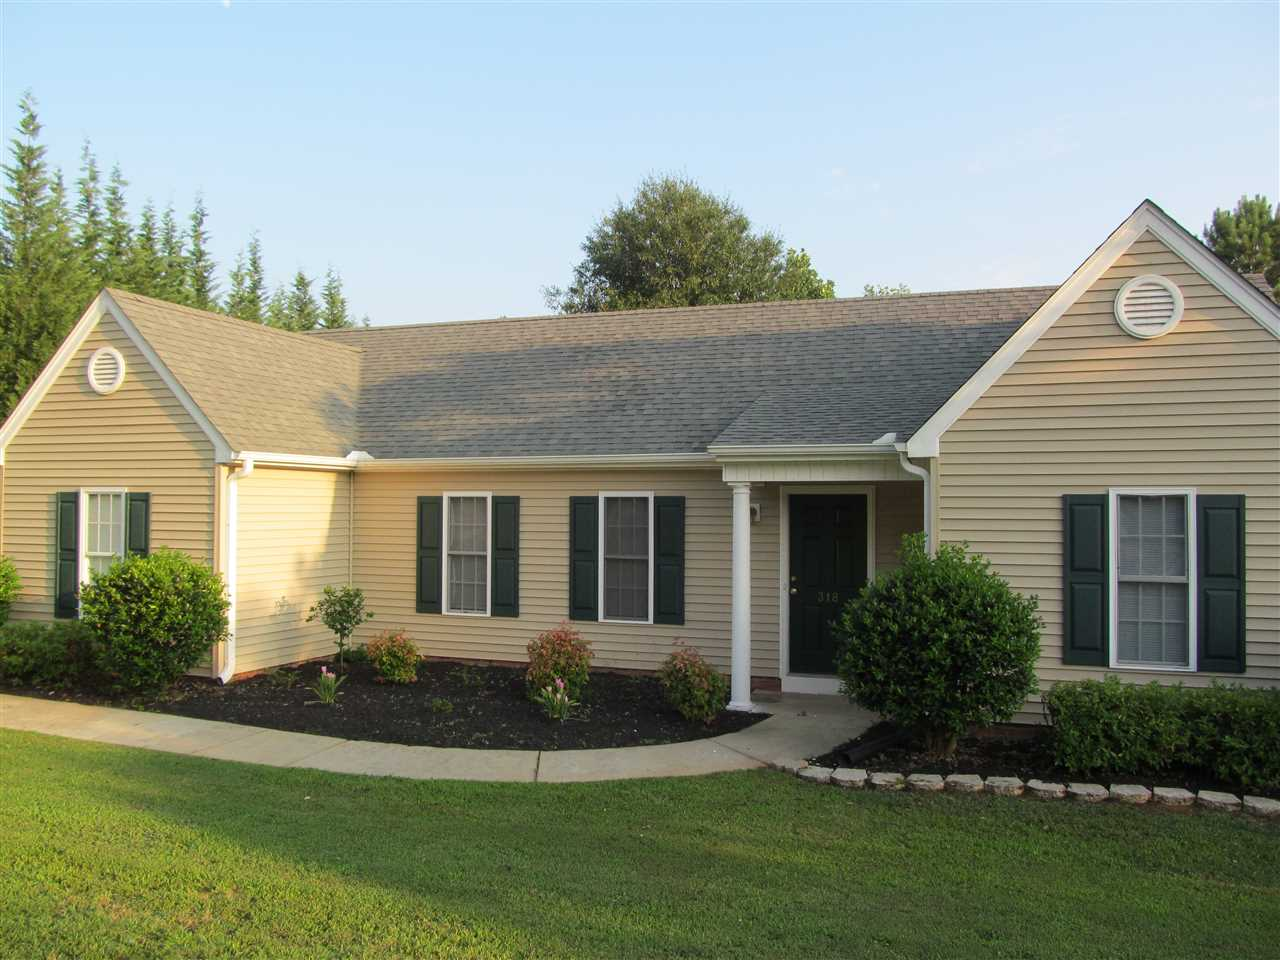 Rental Homes for Rent, ListingId:32556284, location: 318 Hood Rd Easley 29640